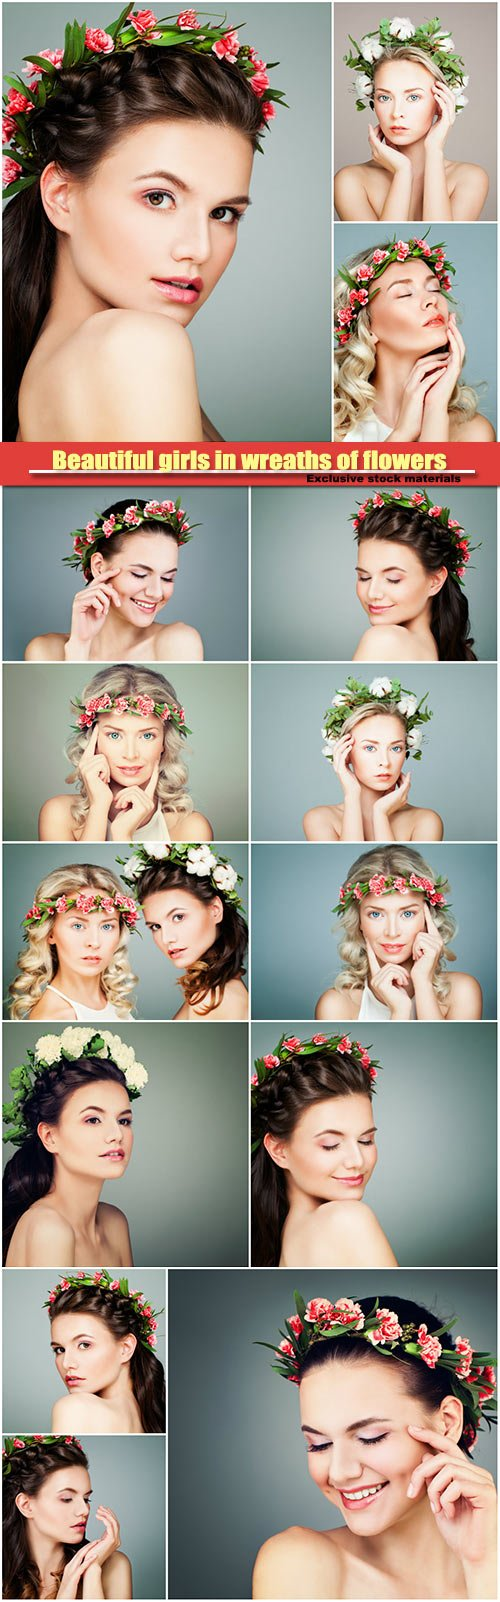 Beautiful girls in wreaths of flowers, skincare and cosmetology concept